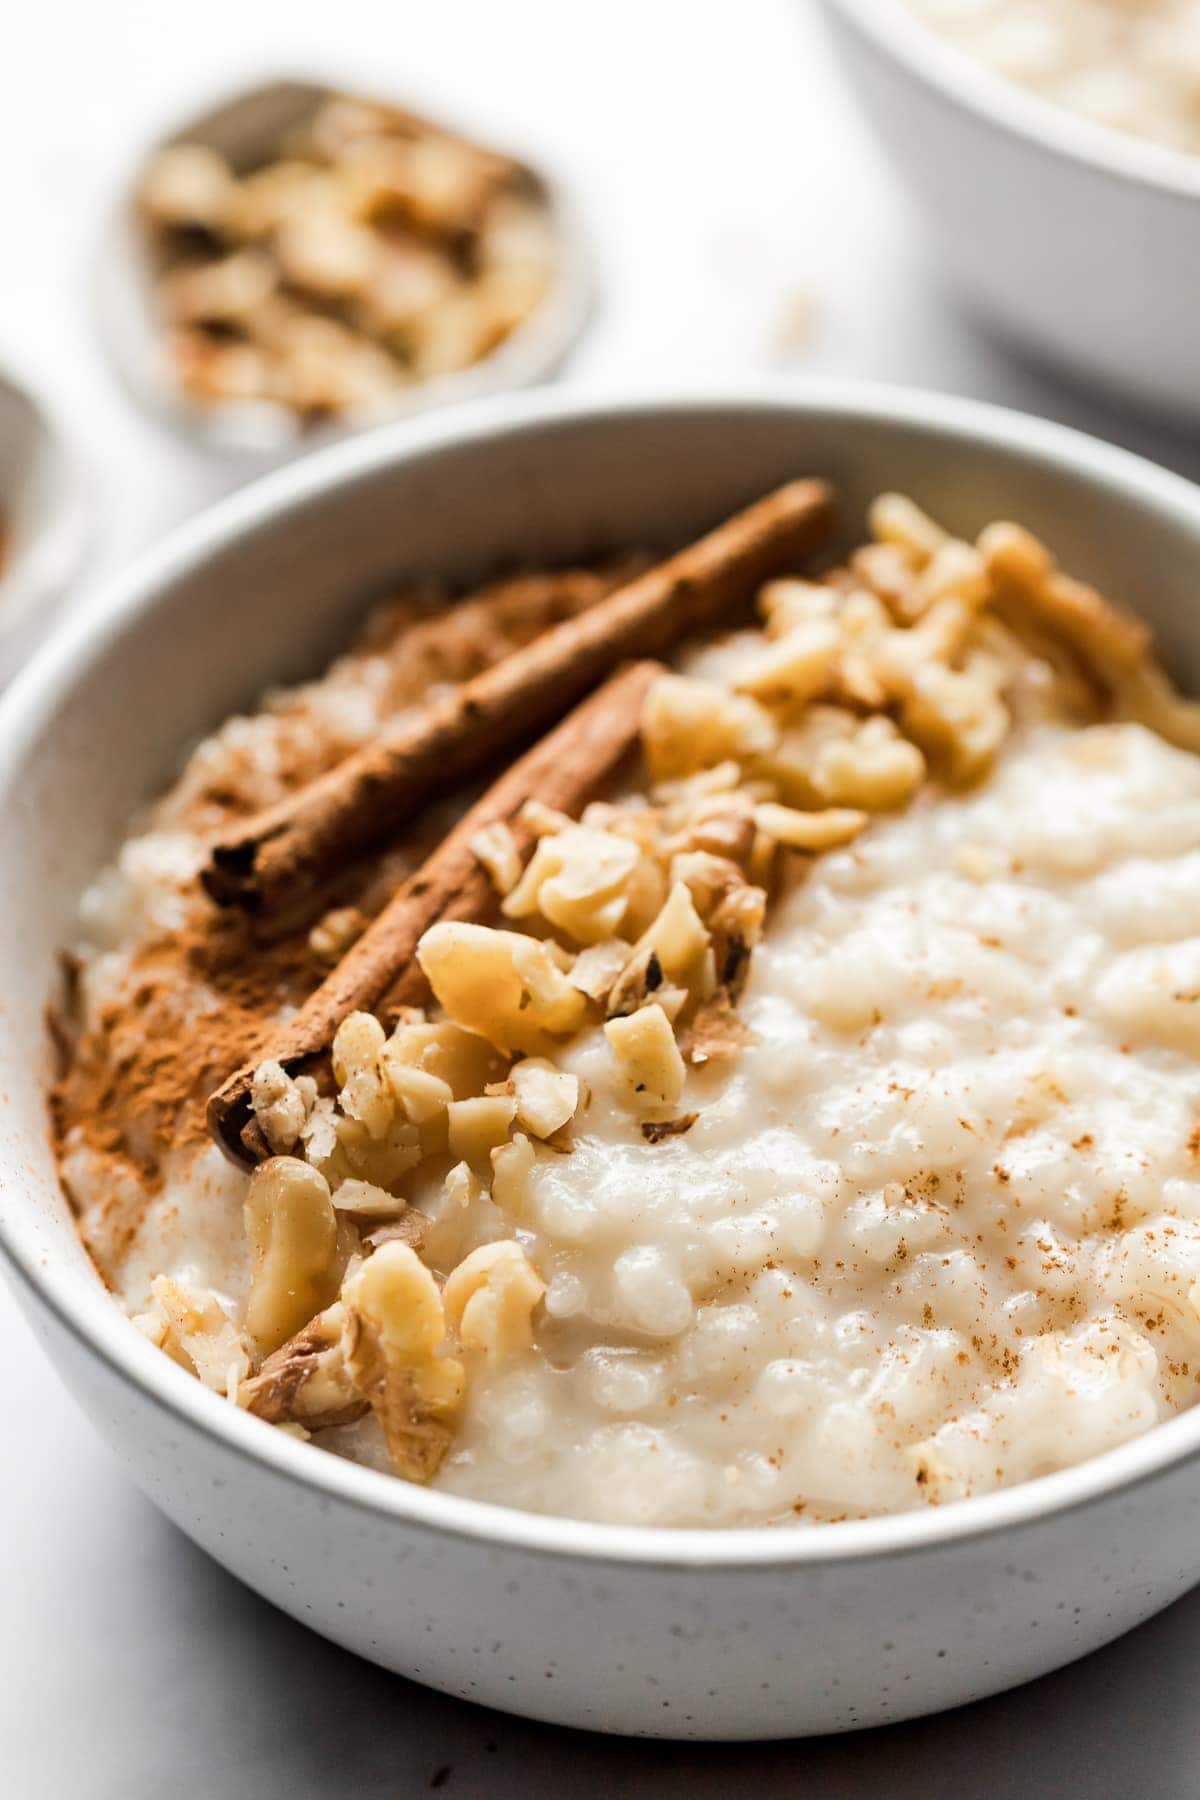 Arroz con Leche (or Mexican rice pudding) is a comforting and simple no-fuss dessert that's guaranteed to satisfy any sweet tooth.